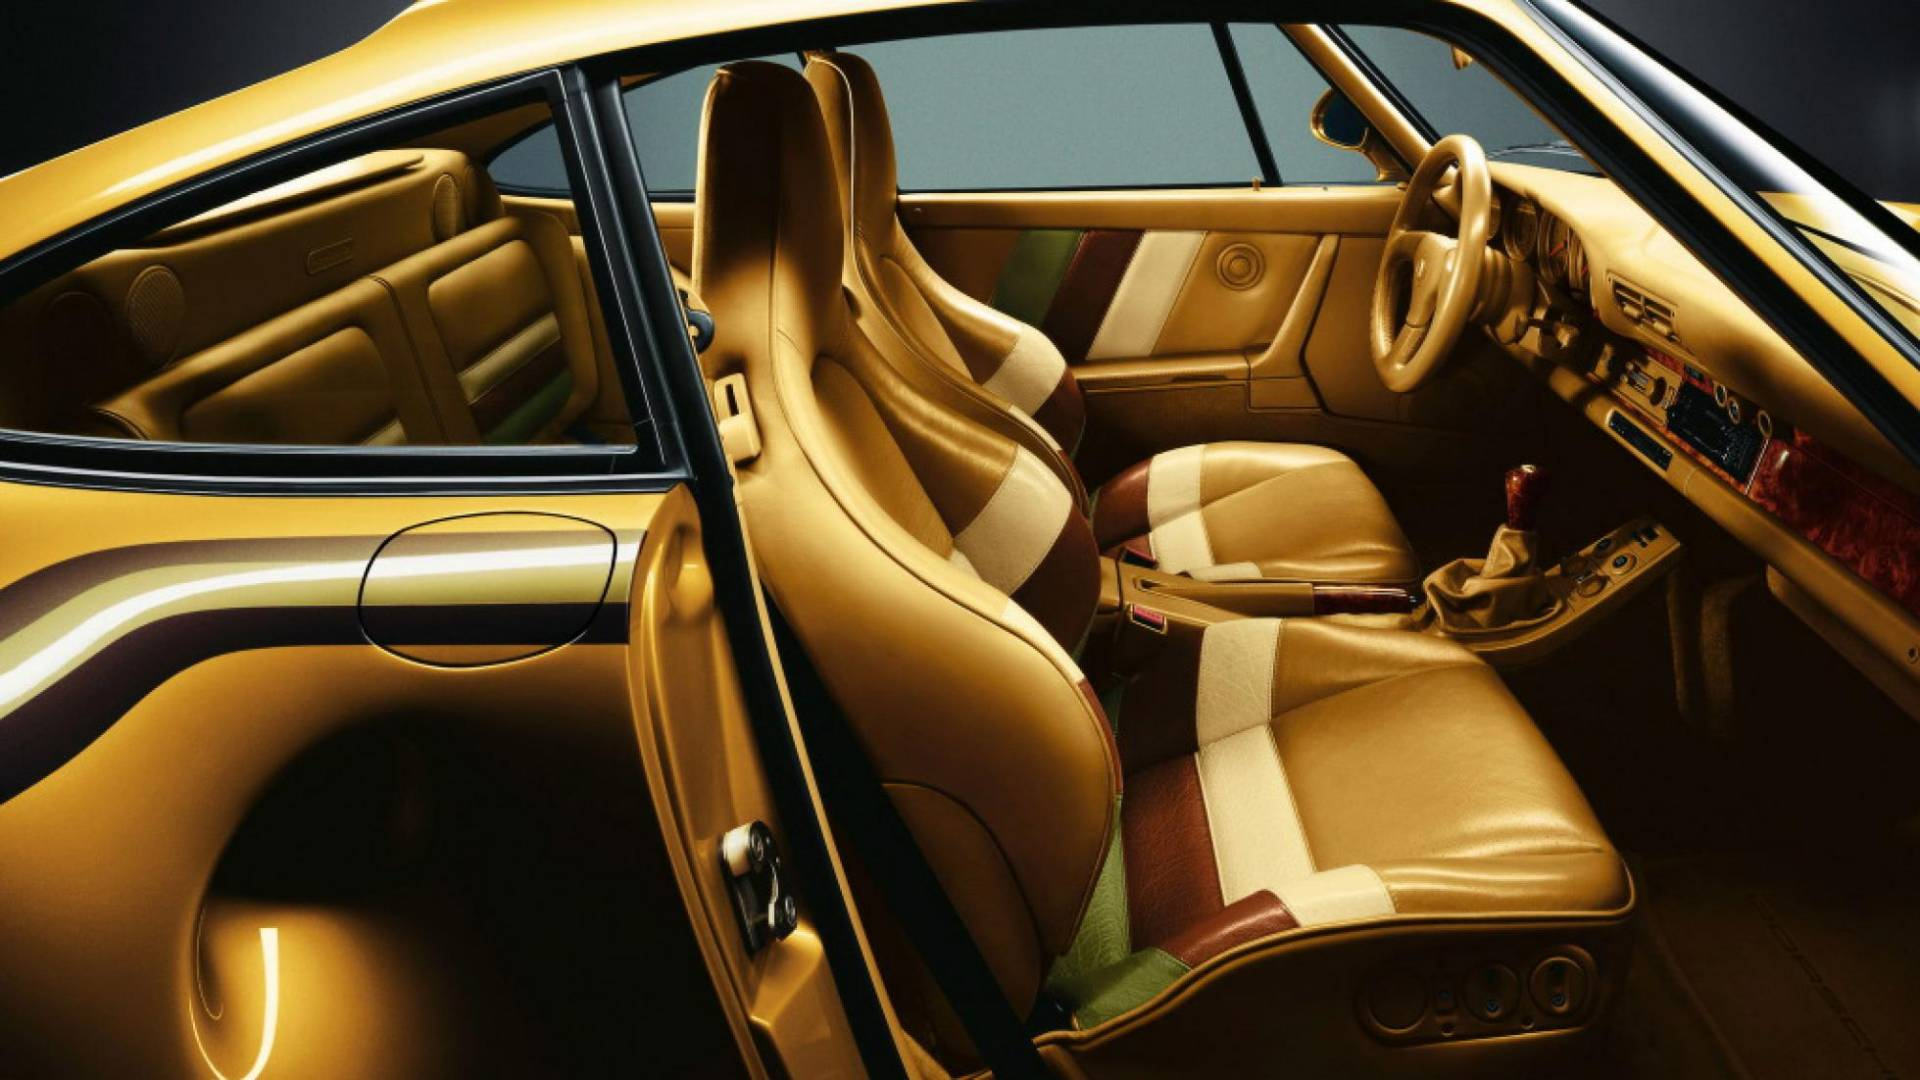 44b177ae-porsche-exclusive-959-in-gold-built-for-arab-prince-10